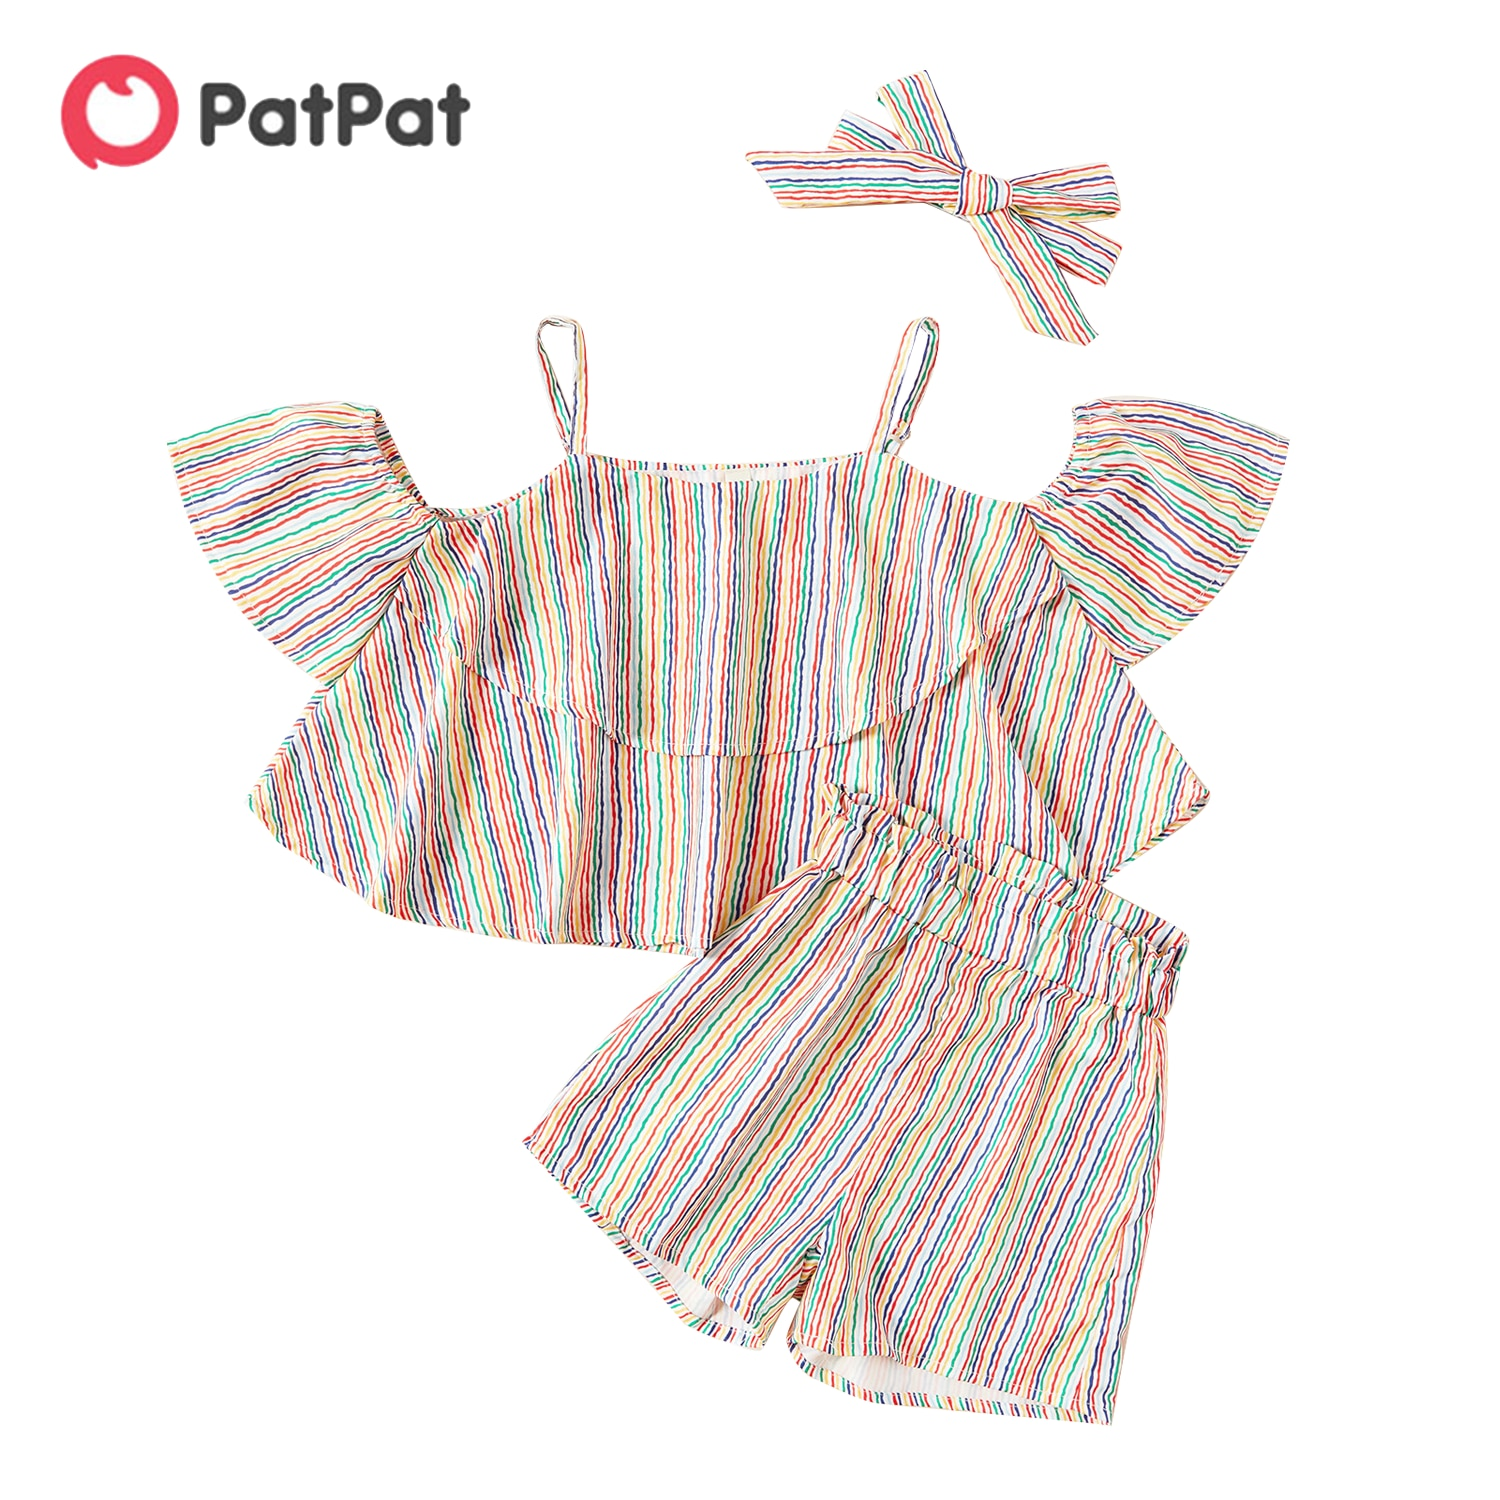 PatPat 2021 New Arrival 2-piece Baby / Toddler Boy Camouflage Tee and Shorts Set